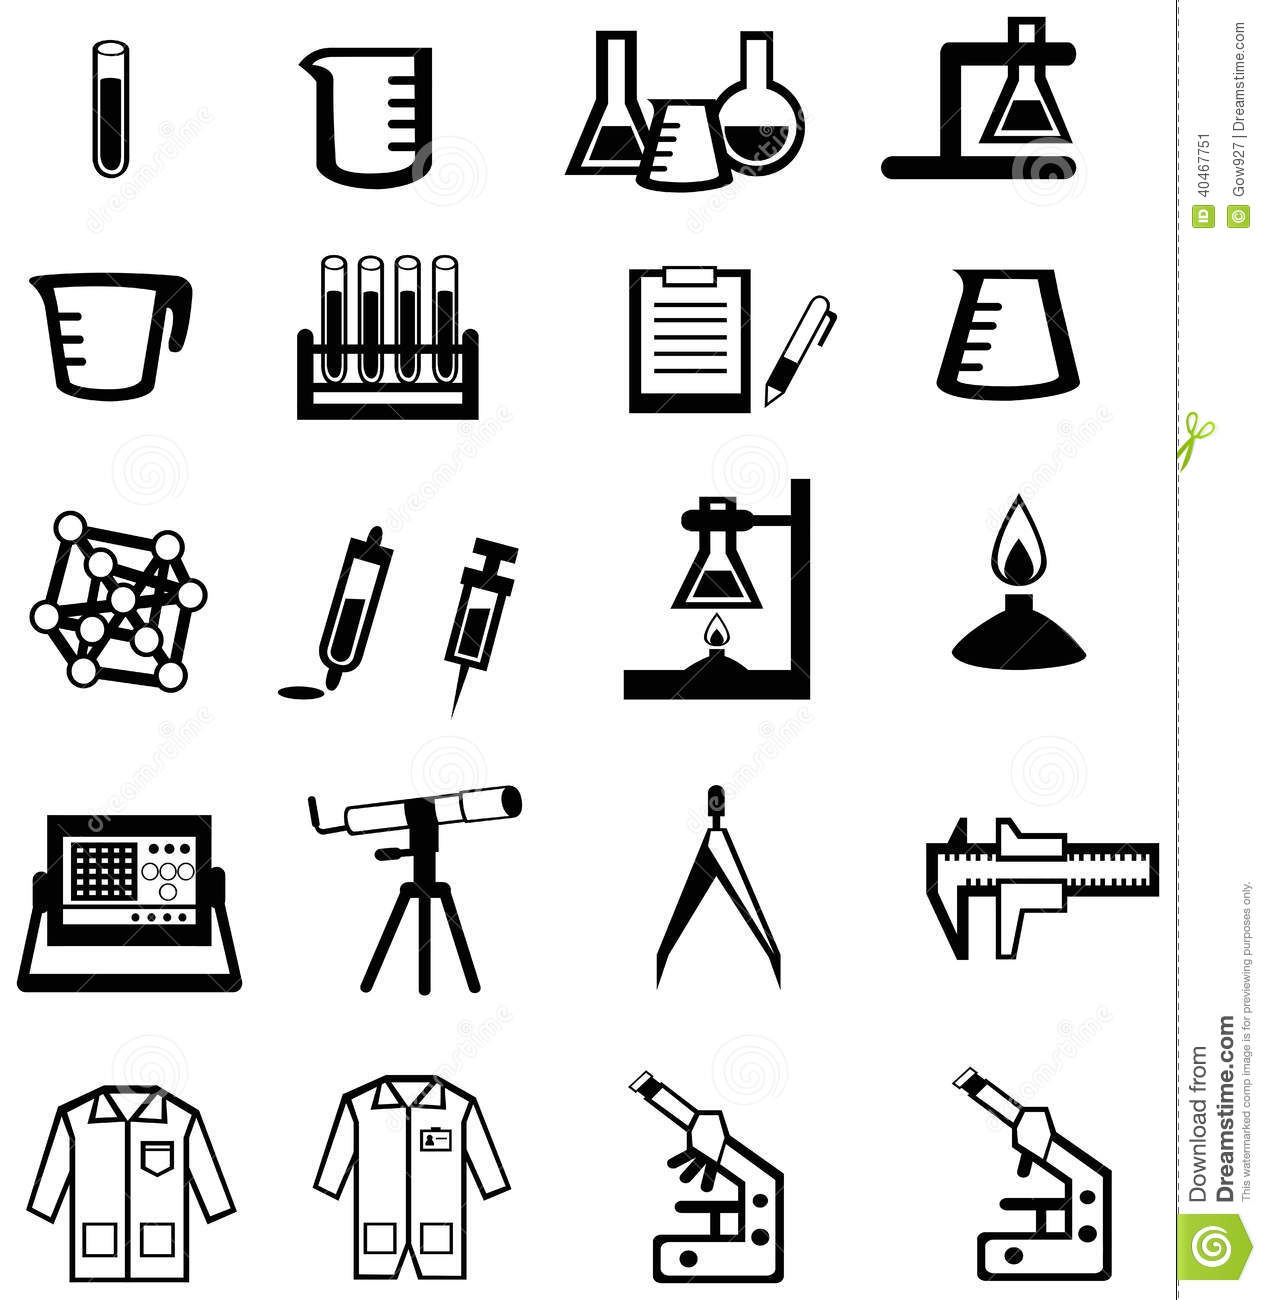 Science clipart silhouette Http://thumbs science com/z/silhouette http://thumbs chemistry